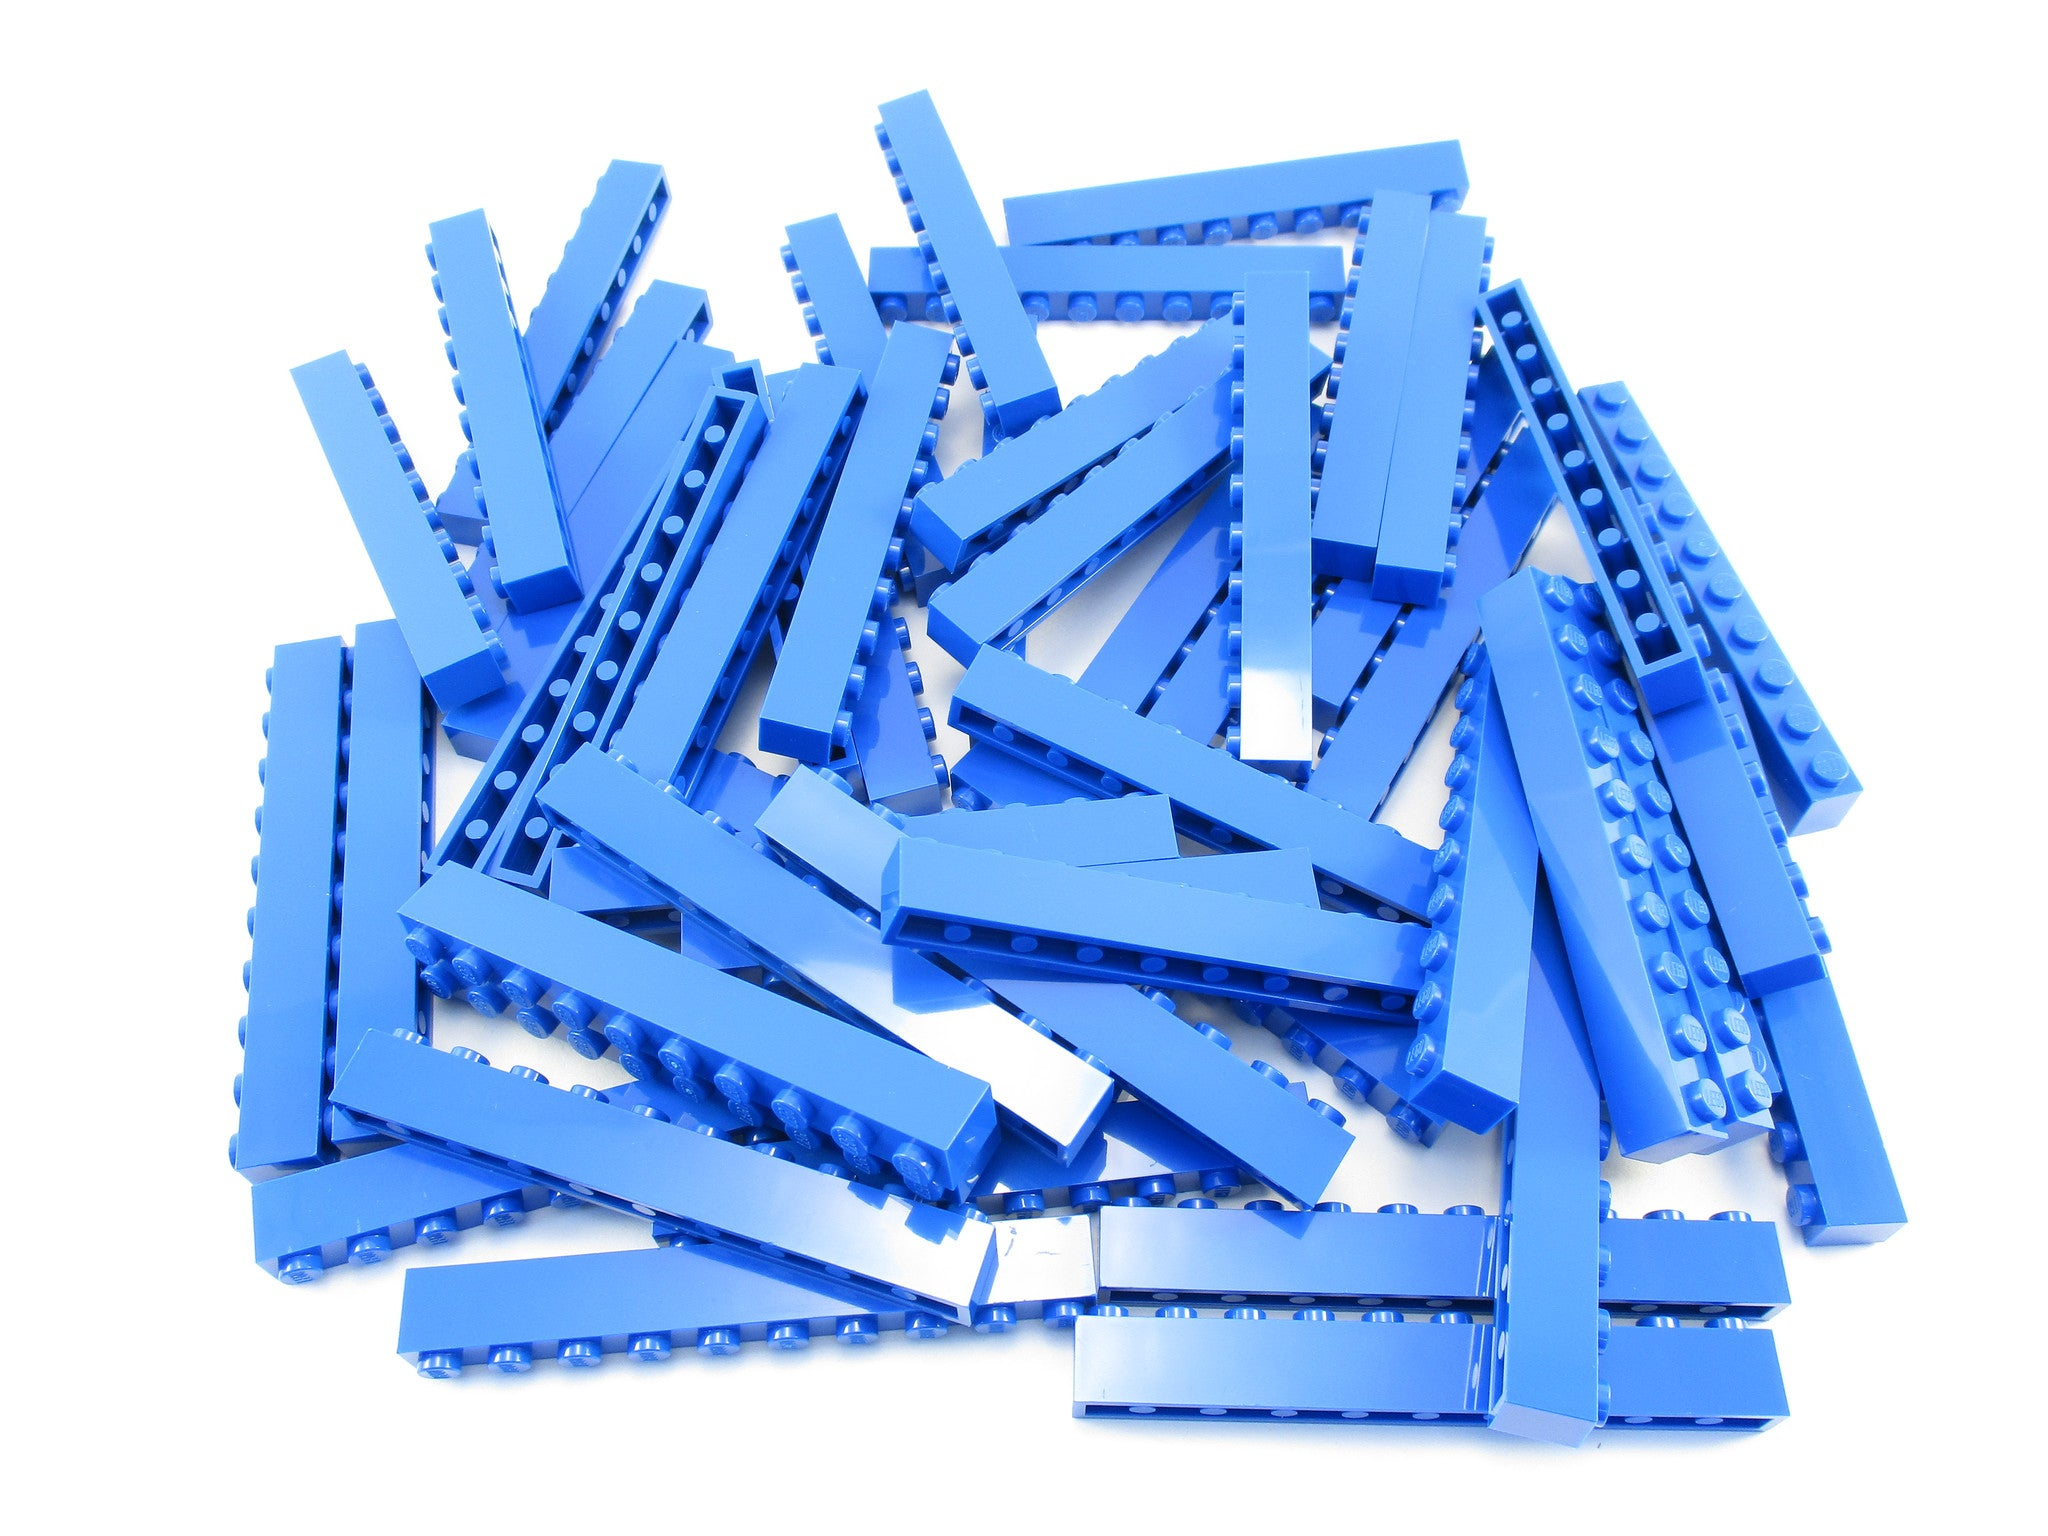 LEGO Blue Brick 1x10 Lot of 50 Parts Pieces 6111